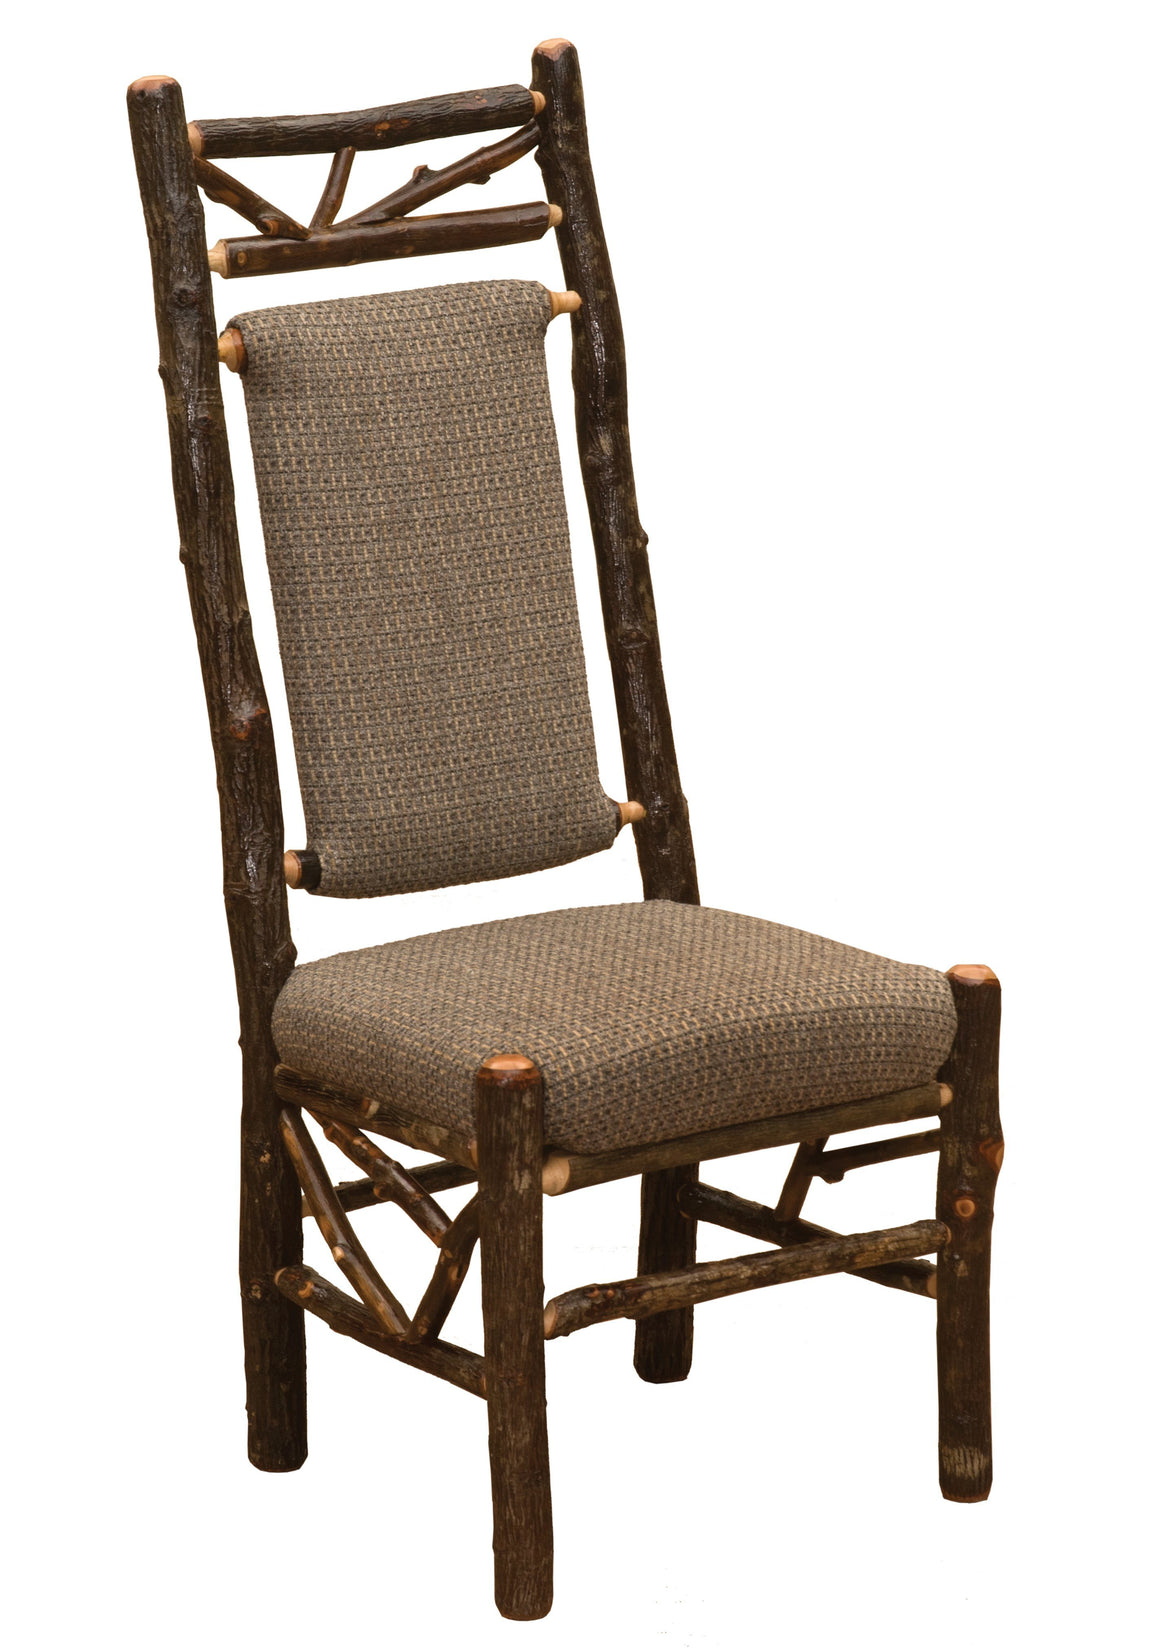 Natural Hickory Log Twig Upholstered Back Side Chair - Standard Finish Chair Fireside Lodge Customer's Own Material